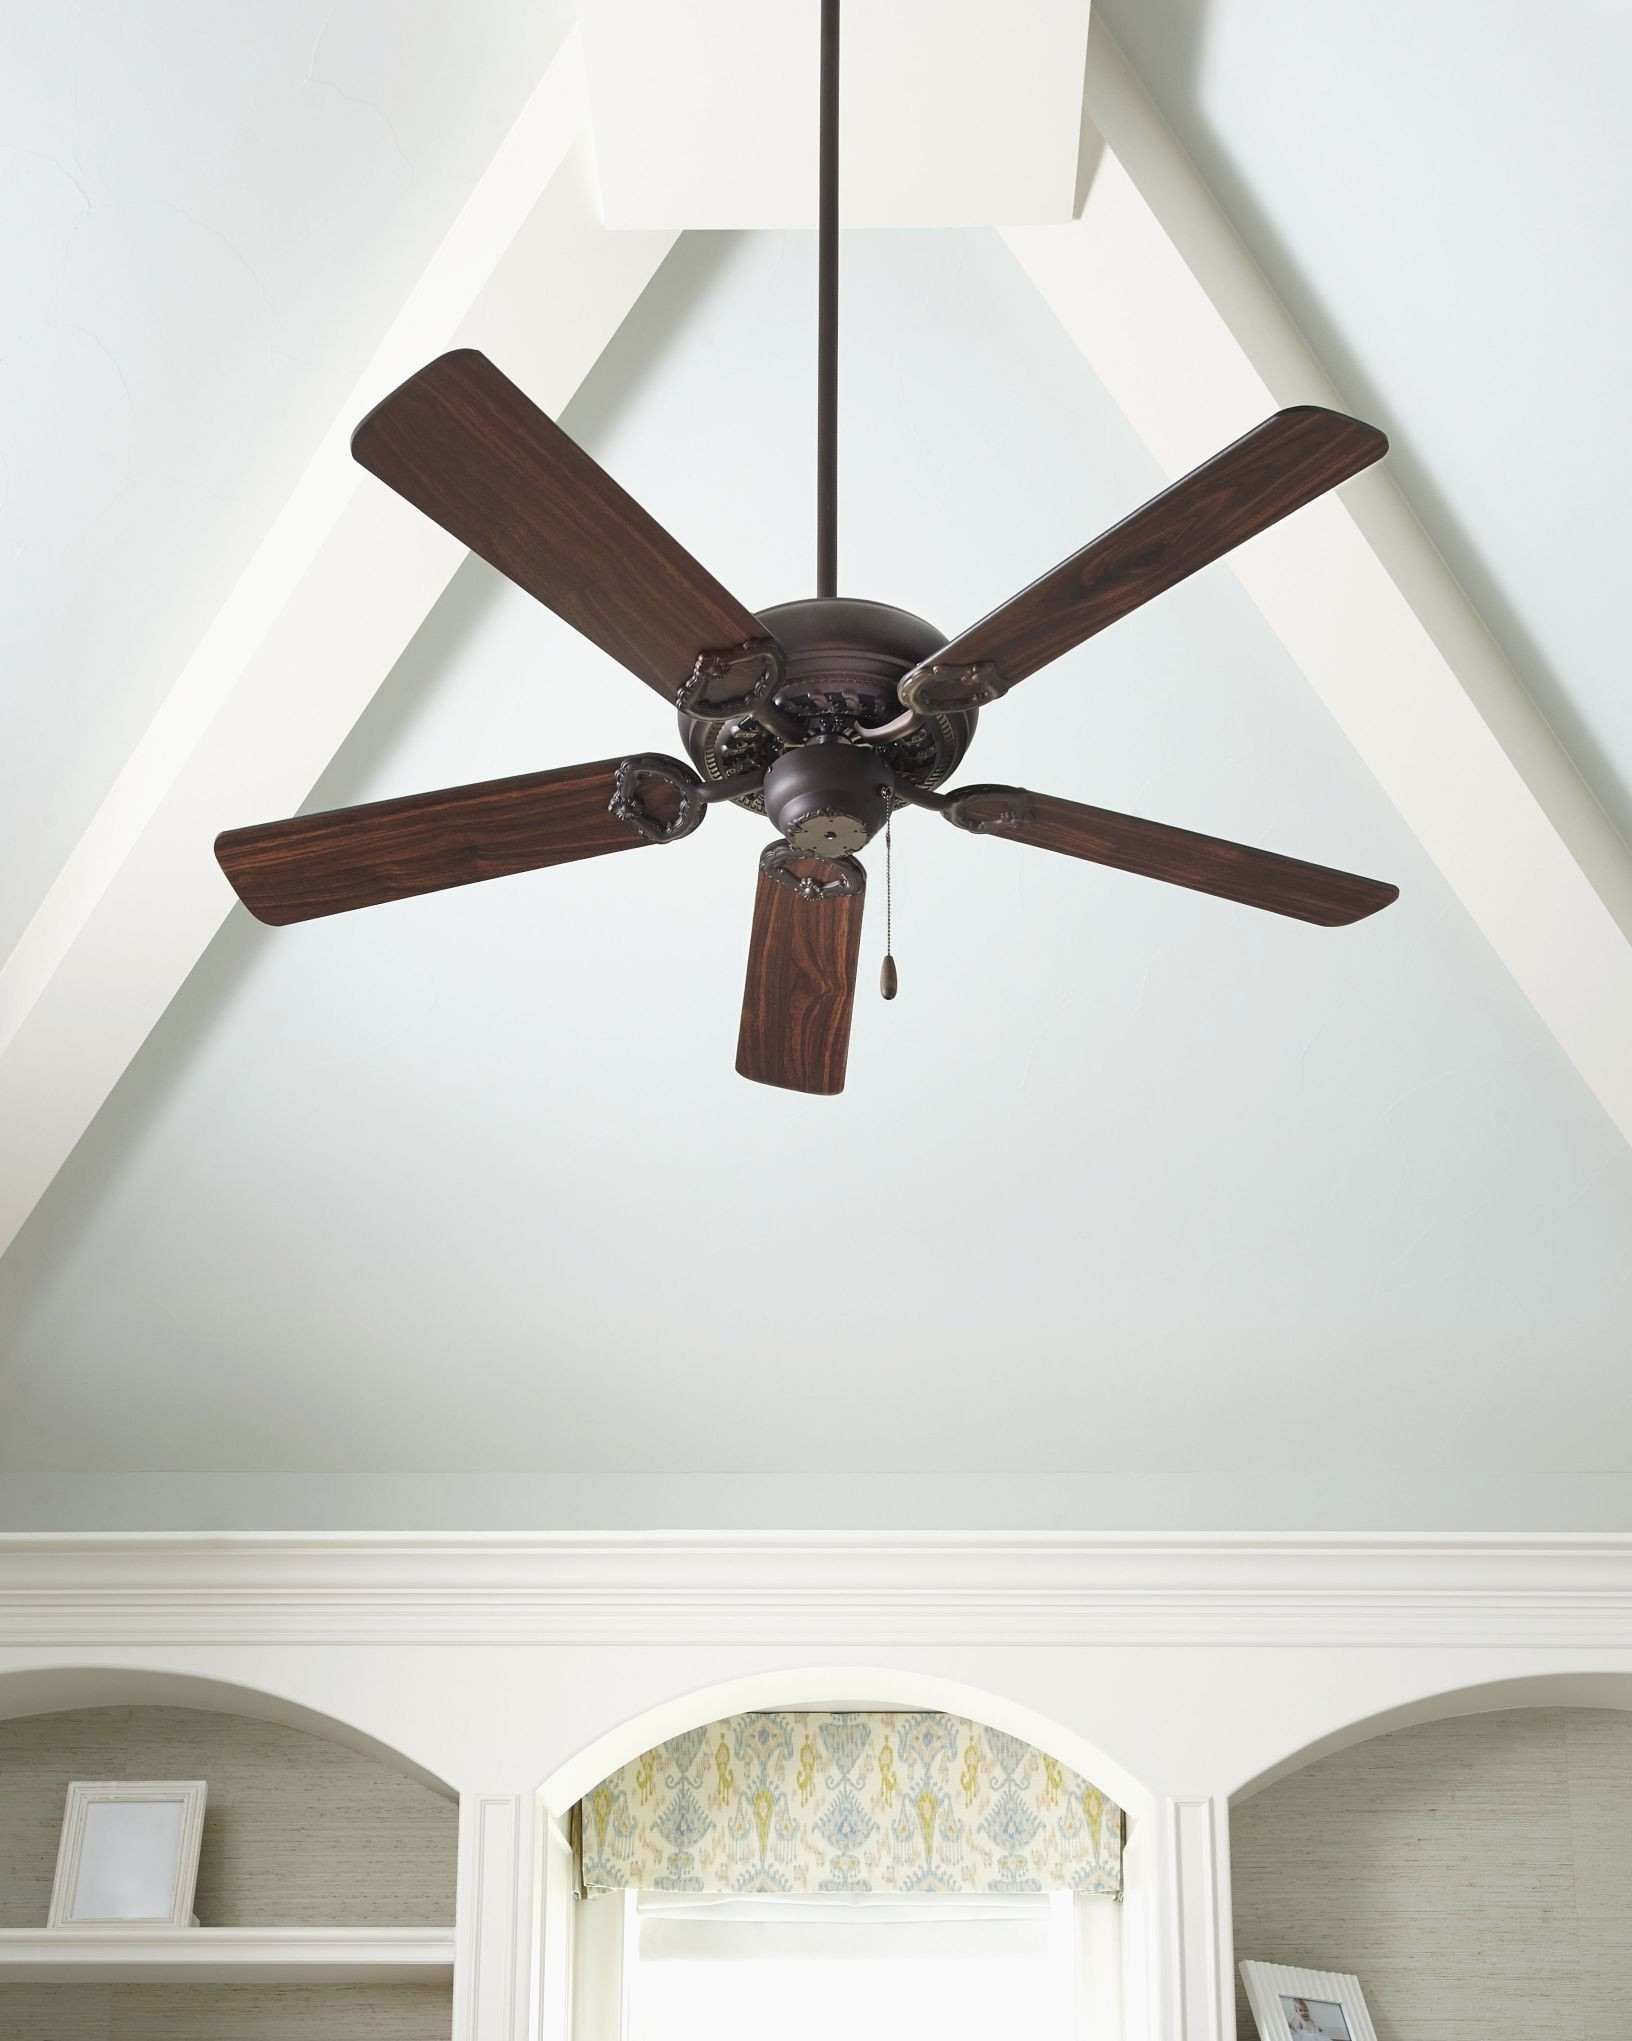 Most Recently Released Indoor Pottery Barn Ceiling Fans With Lights Perfect Quorum With Regard To Outdoor Ceiling Fans For Barns (View 6 of 20)